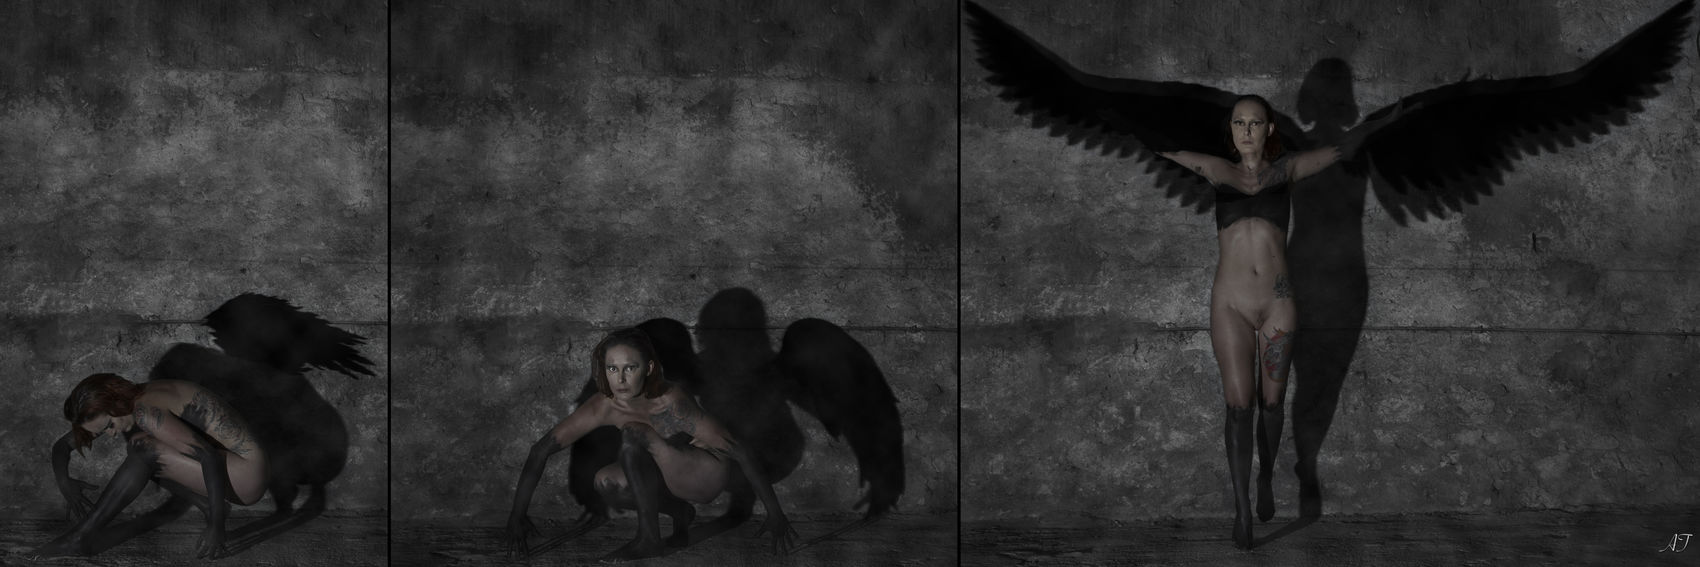 Adult Adults Only Angel Dark Indoors  Looking Night Real People Standing Triptych Woman Young Adult